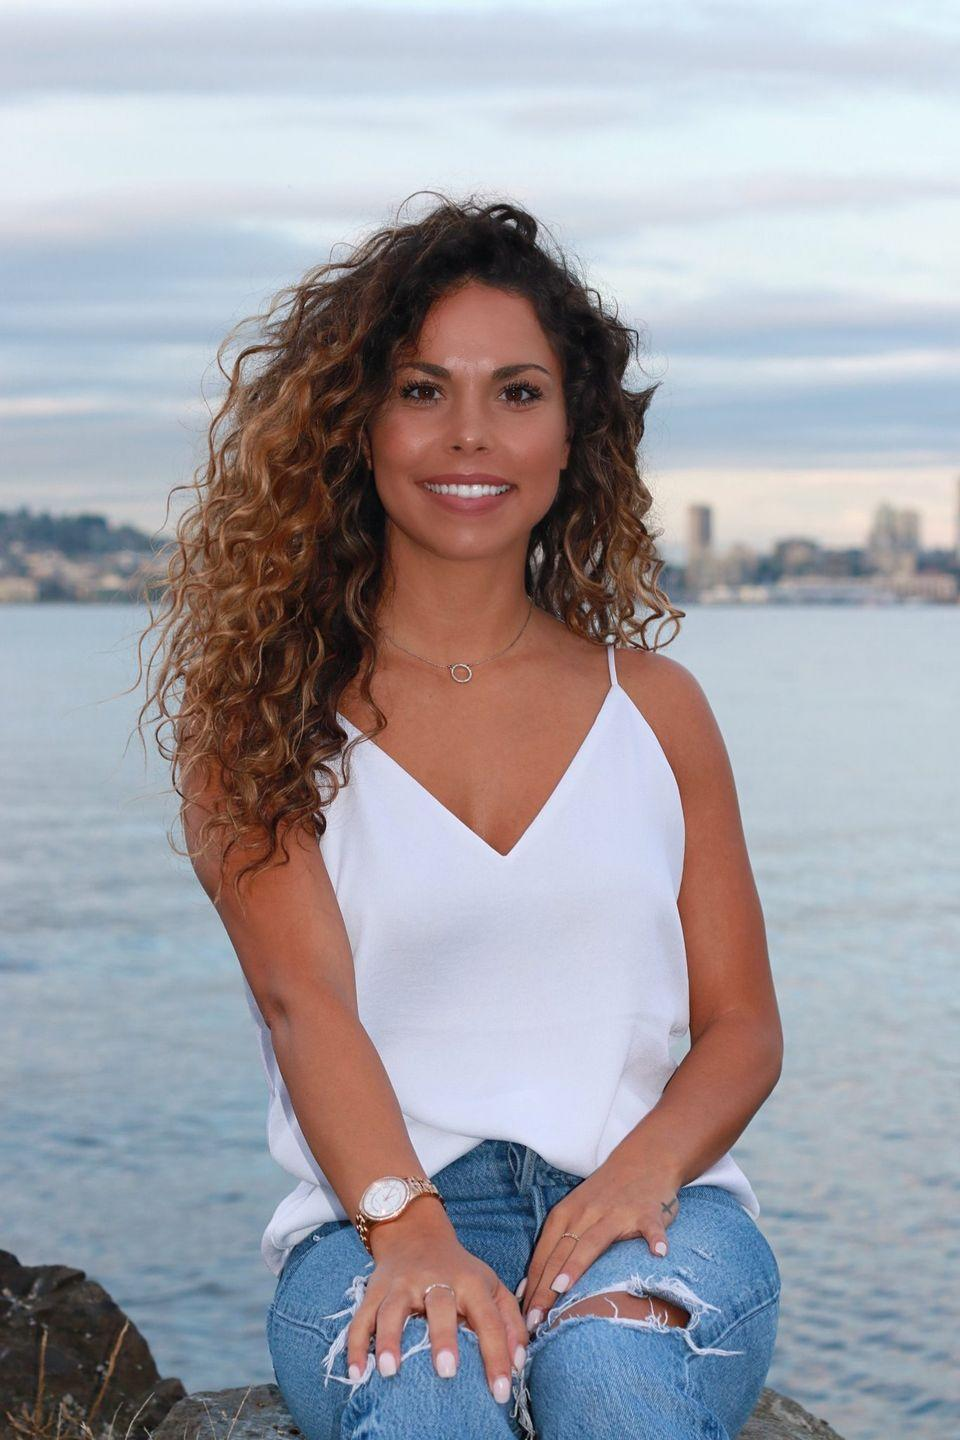 """<p>Kimberly is a talent acquisition partner at Alaska Airlines, which she describes as """"corporate America."""" She lives in the Seattle area.</p><p>She's a Washington State University alum and previously worked for Nordstrom and Kaiser Permanente. Chris says she has a great sense of humor with a """"big bubbly personality,"""" and arrives with a """"fishy entrance.""""<br></p><p><strong>Age: 28</strong></p><p><strong>Hometown: Lake Tapps, WA</strong></p><p><strong>I</strong><strong>n</strong><strong>stagram: <a href=""""https://www.instagram.com/kimberlycourneya/"""" rel=""""nofollow noopener"""" target=""""_blank"""" data-ylk=""""slk:@kimberlycourneya"""" class=""""link rapid-noclick-resp"""">@kimberlycourneya</a></strong></p>"""